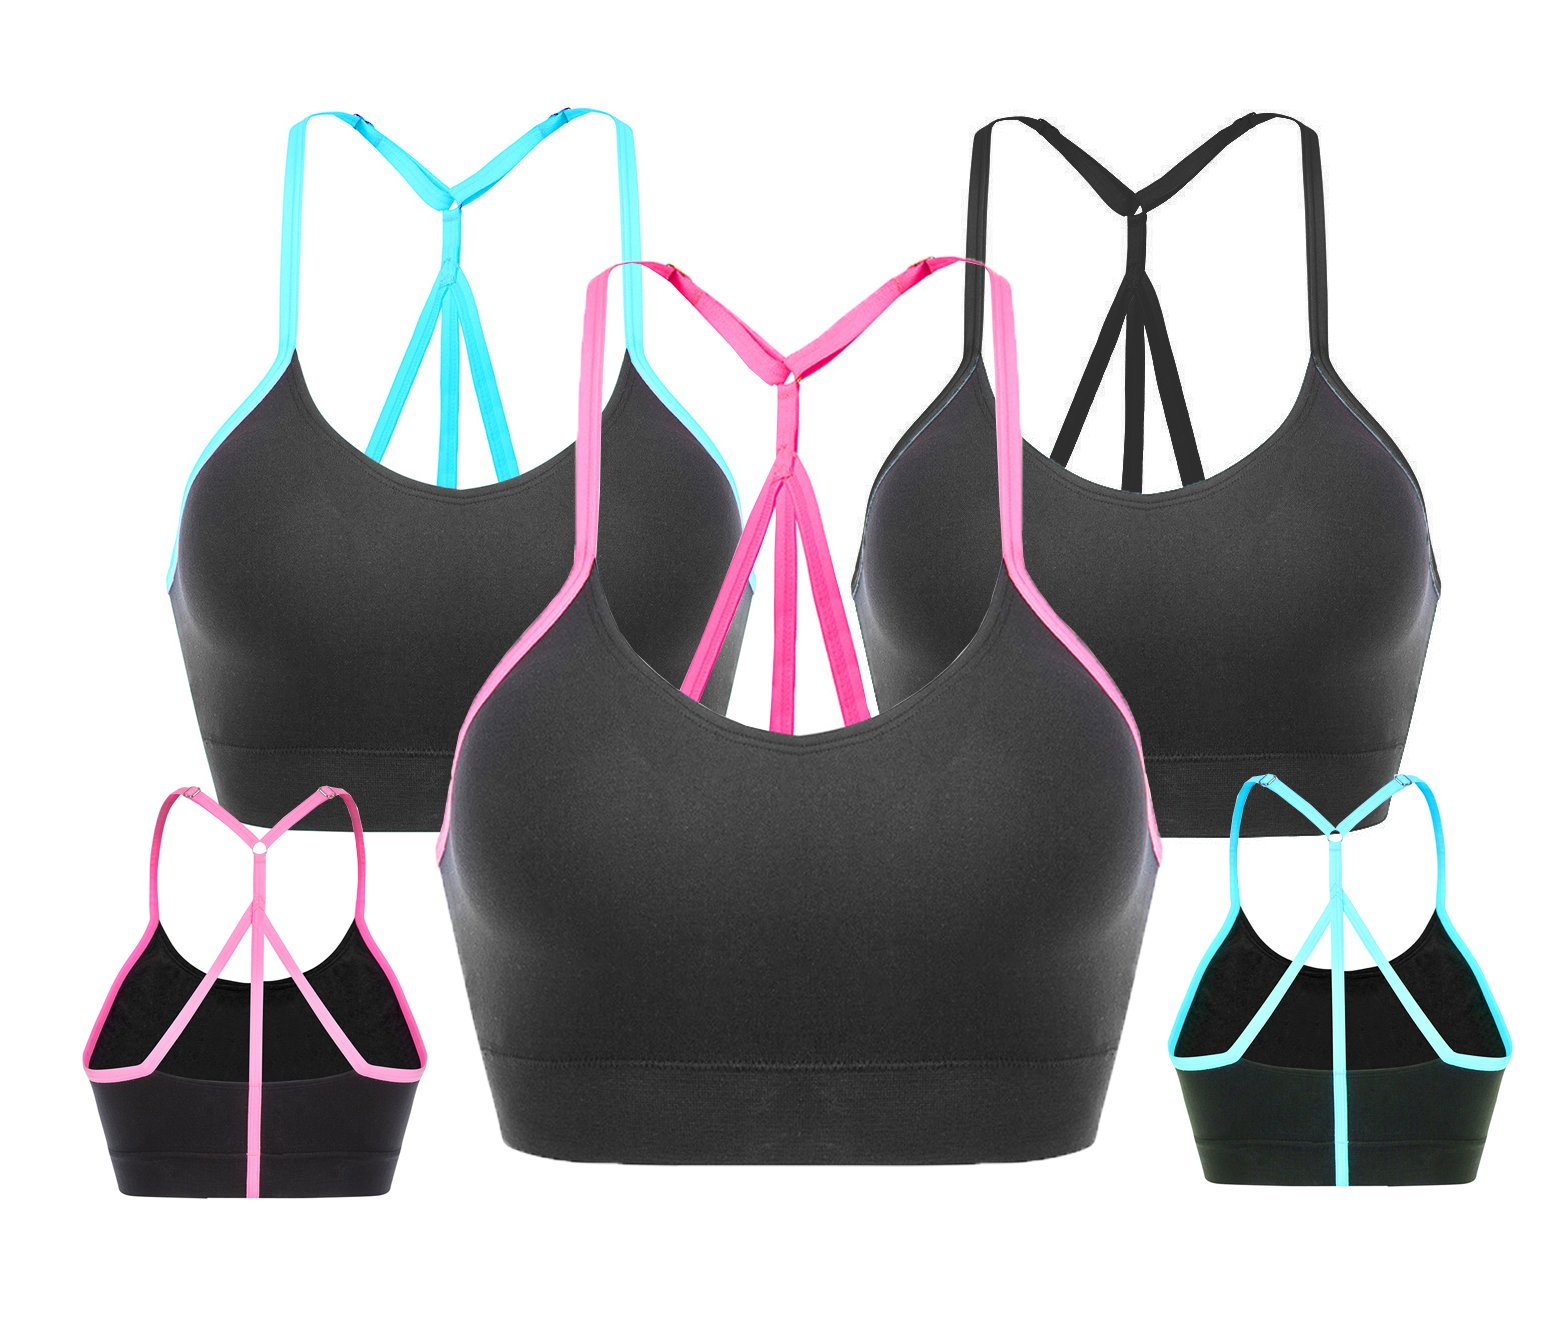 AKAMC Women's Removable Padded Sports Bras Medium Support Workout Yoga Bra 3 Pack,Small